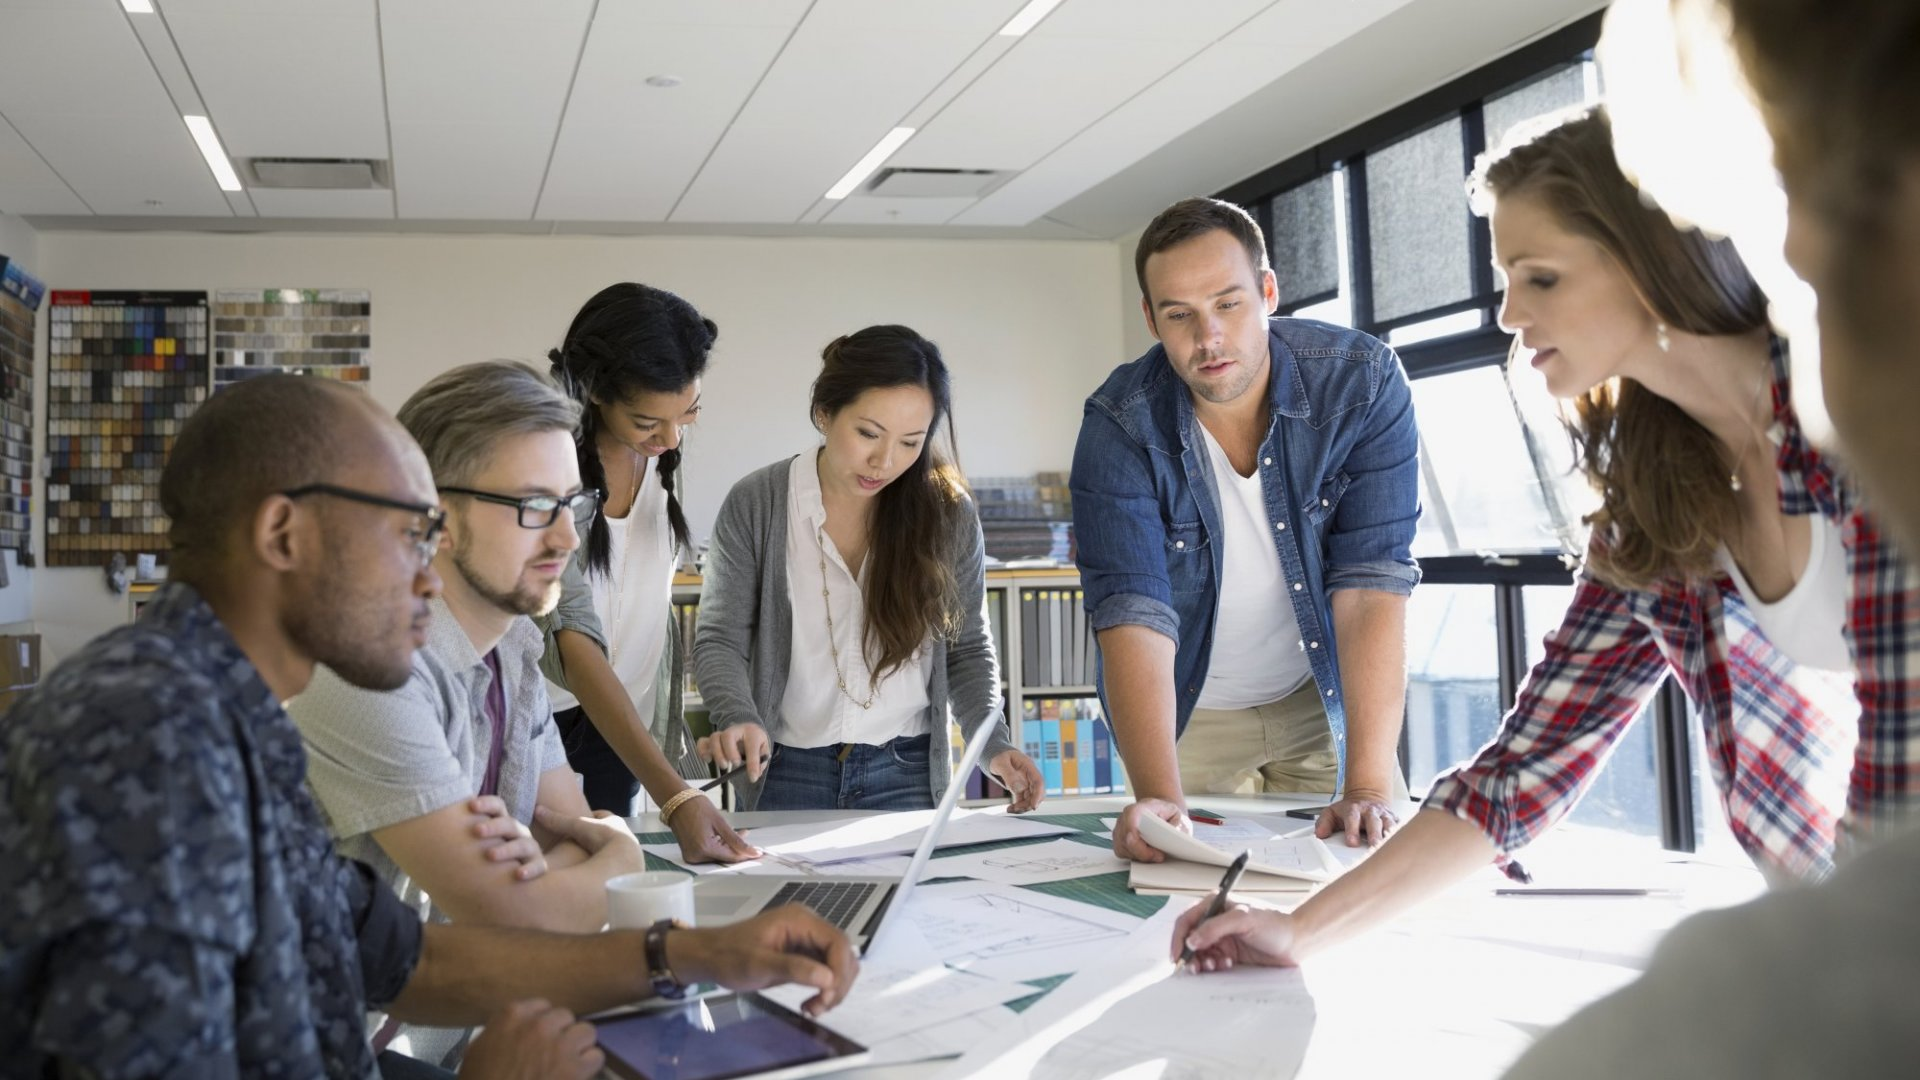 4 Phrases to Jump Start Creativity In Any Meeting